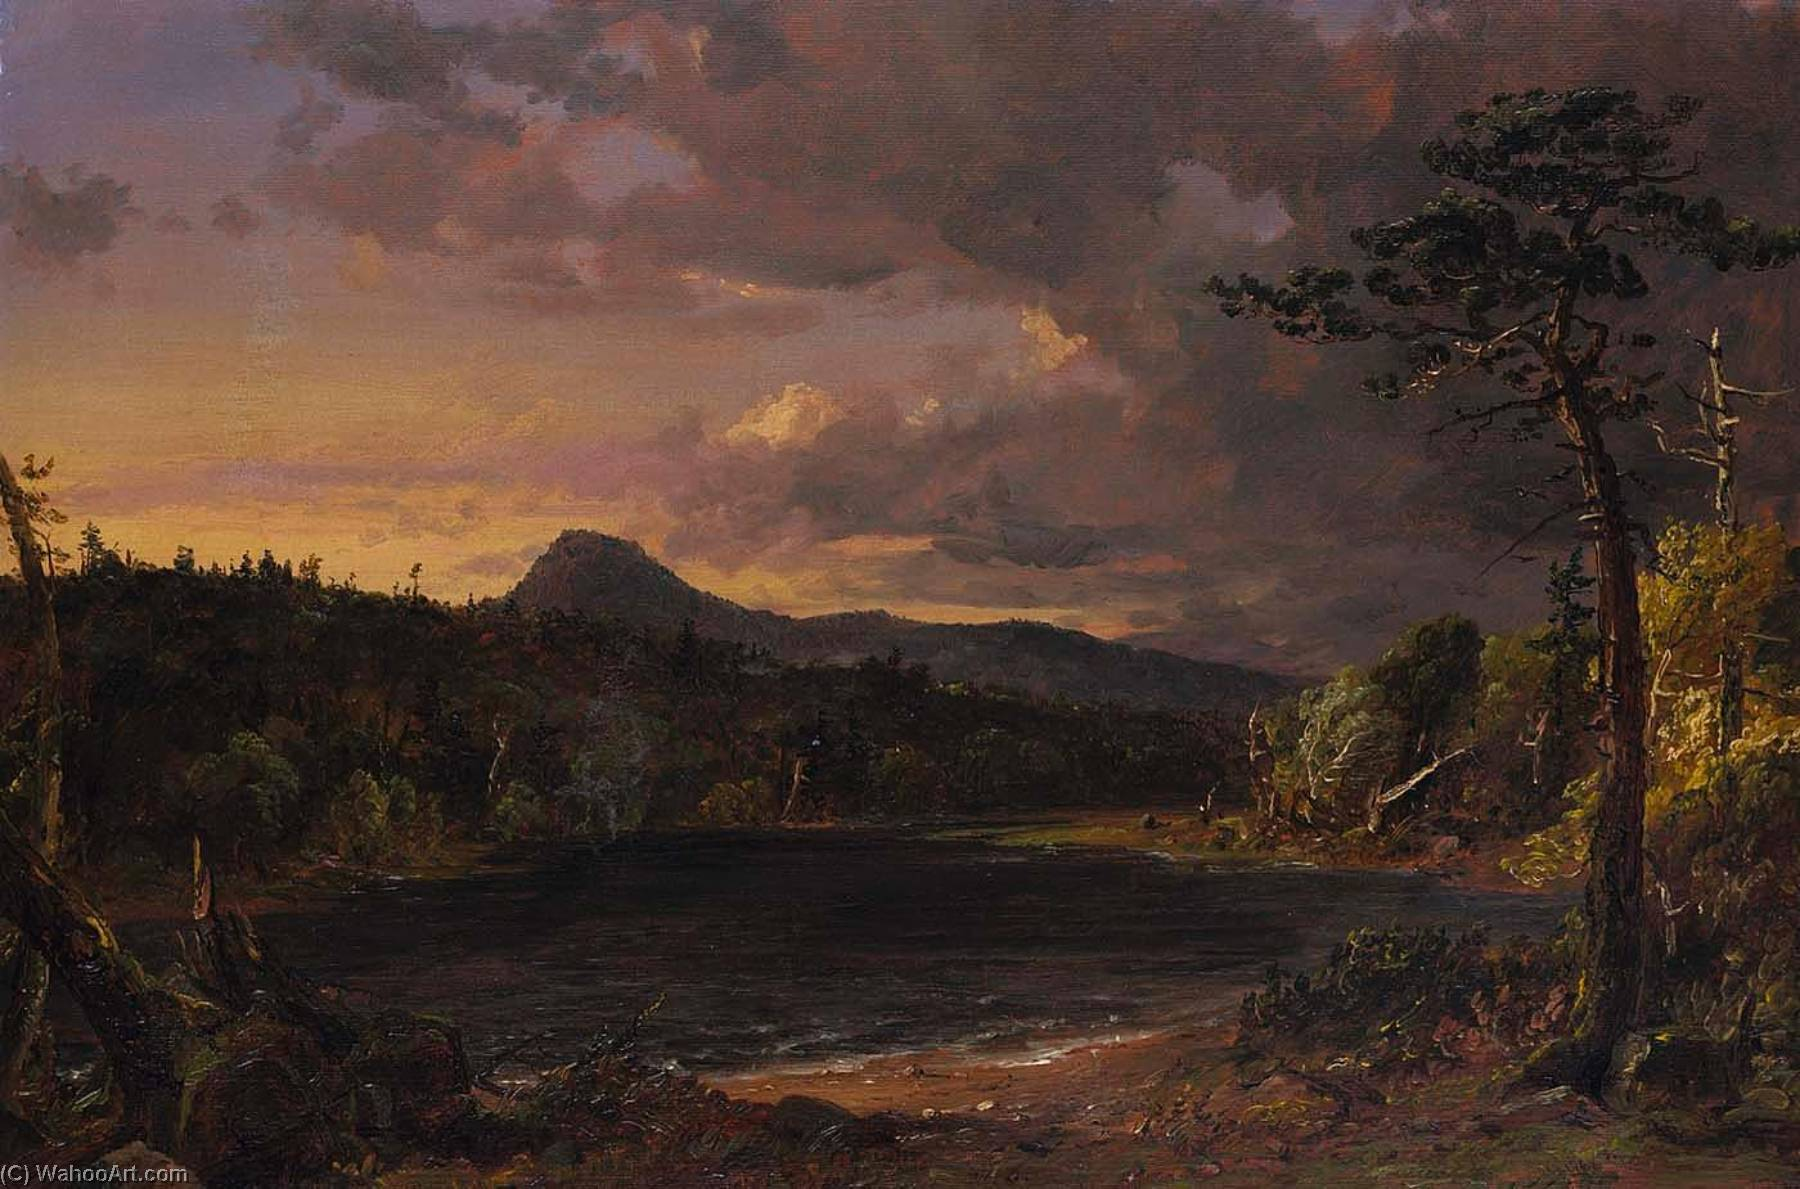 Catskill Creek, 1850 by Jasper Francis Cropsey (1823-1900, United States) | Museum Quality Reproductions | WahooArt.com